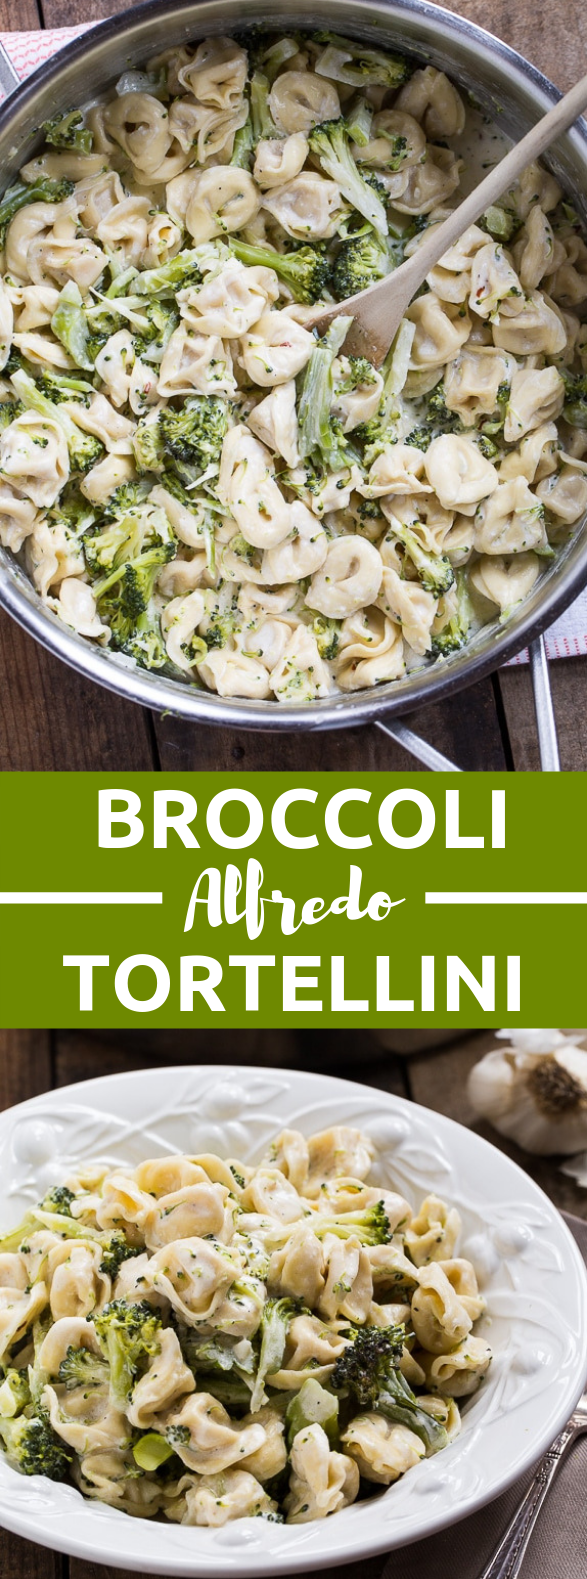 Broccoli Alfredo Tortellini #vegetarian #foodrecipes